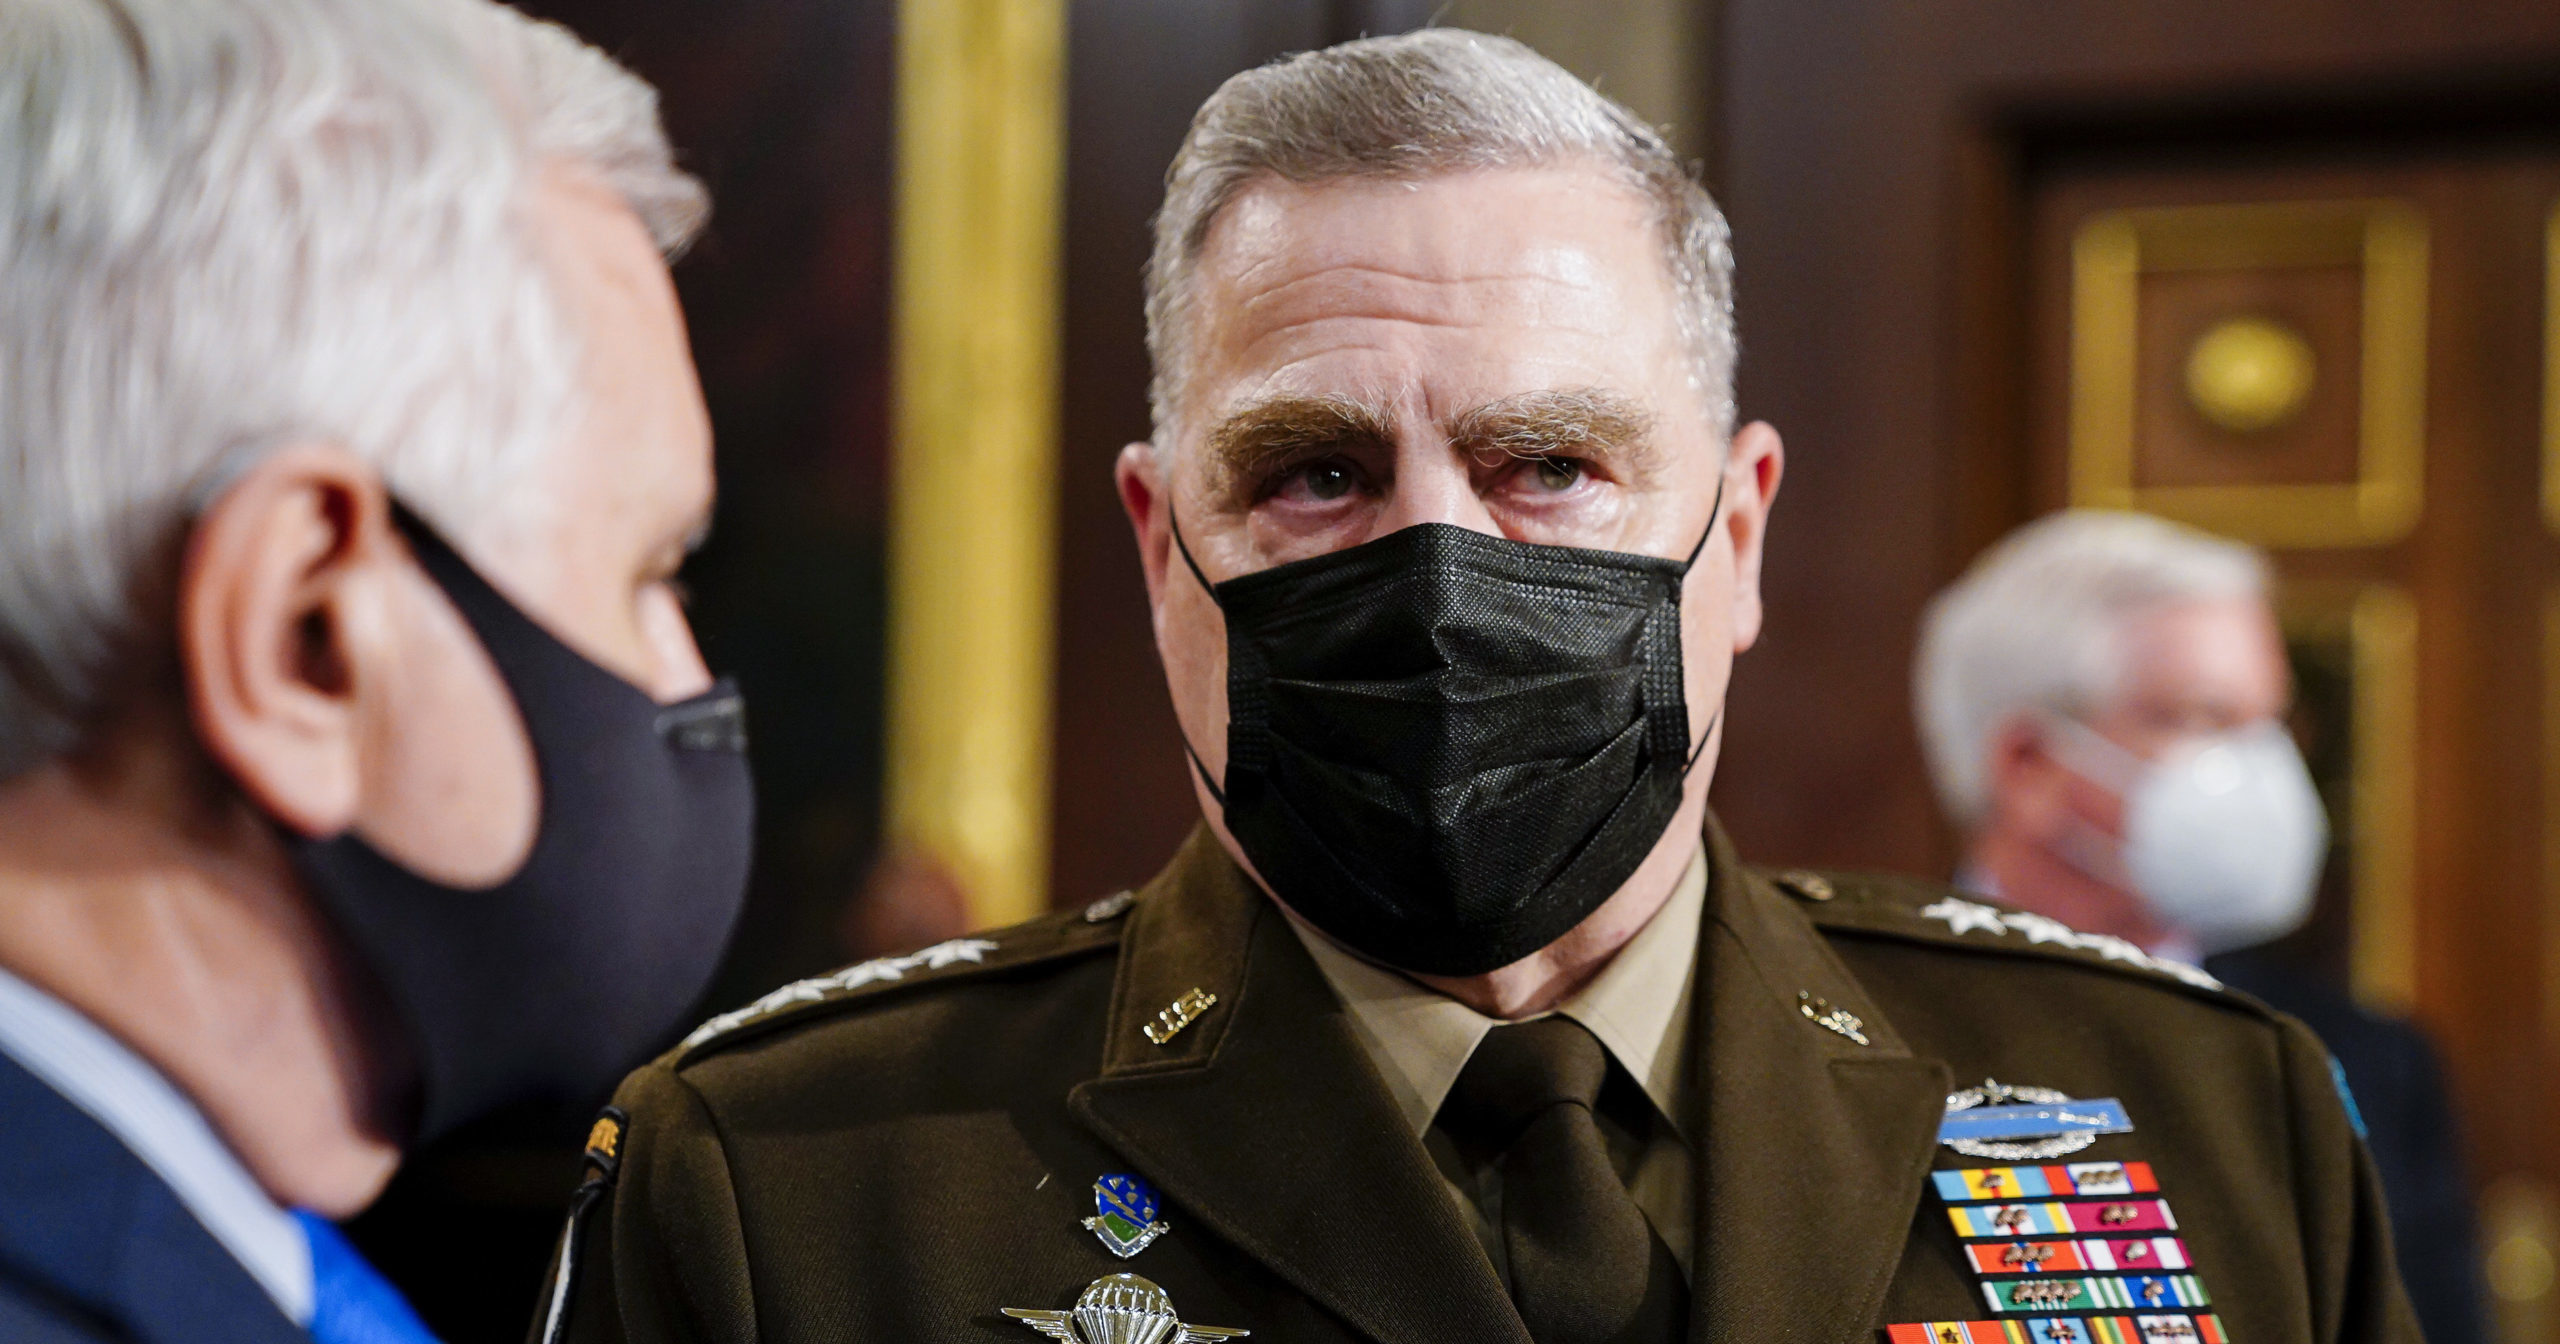 Gen. Mark Milley arrives to the House chamber ahead of President Joe Biden's speech to a joint session of Congress on Wednesday at the U.S. Capitol in Washington, D.C.